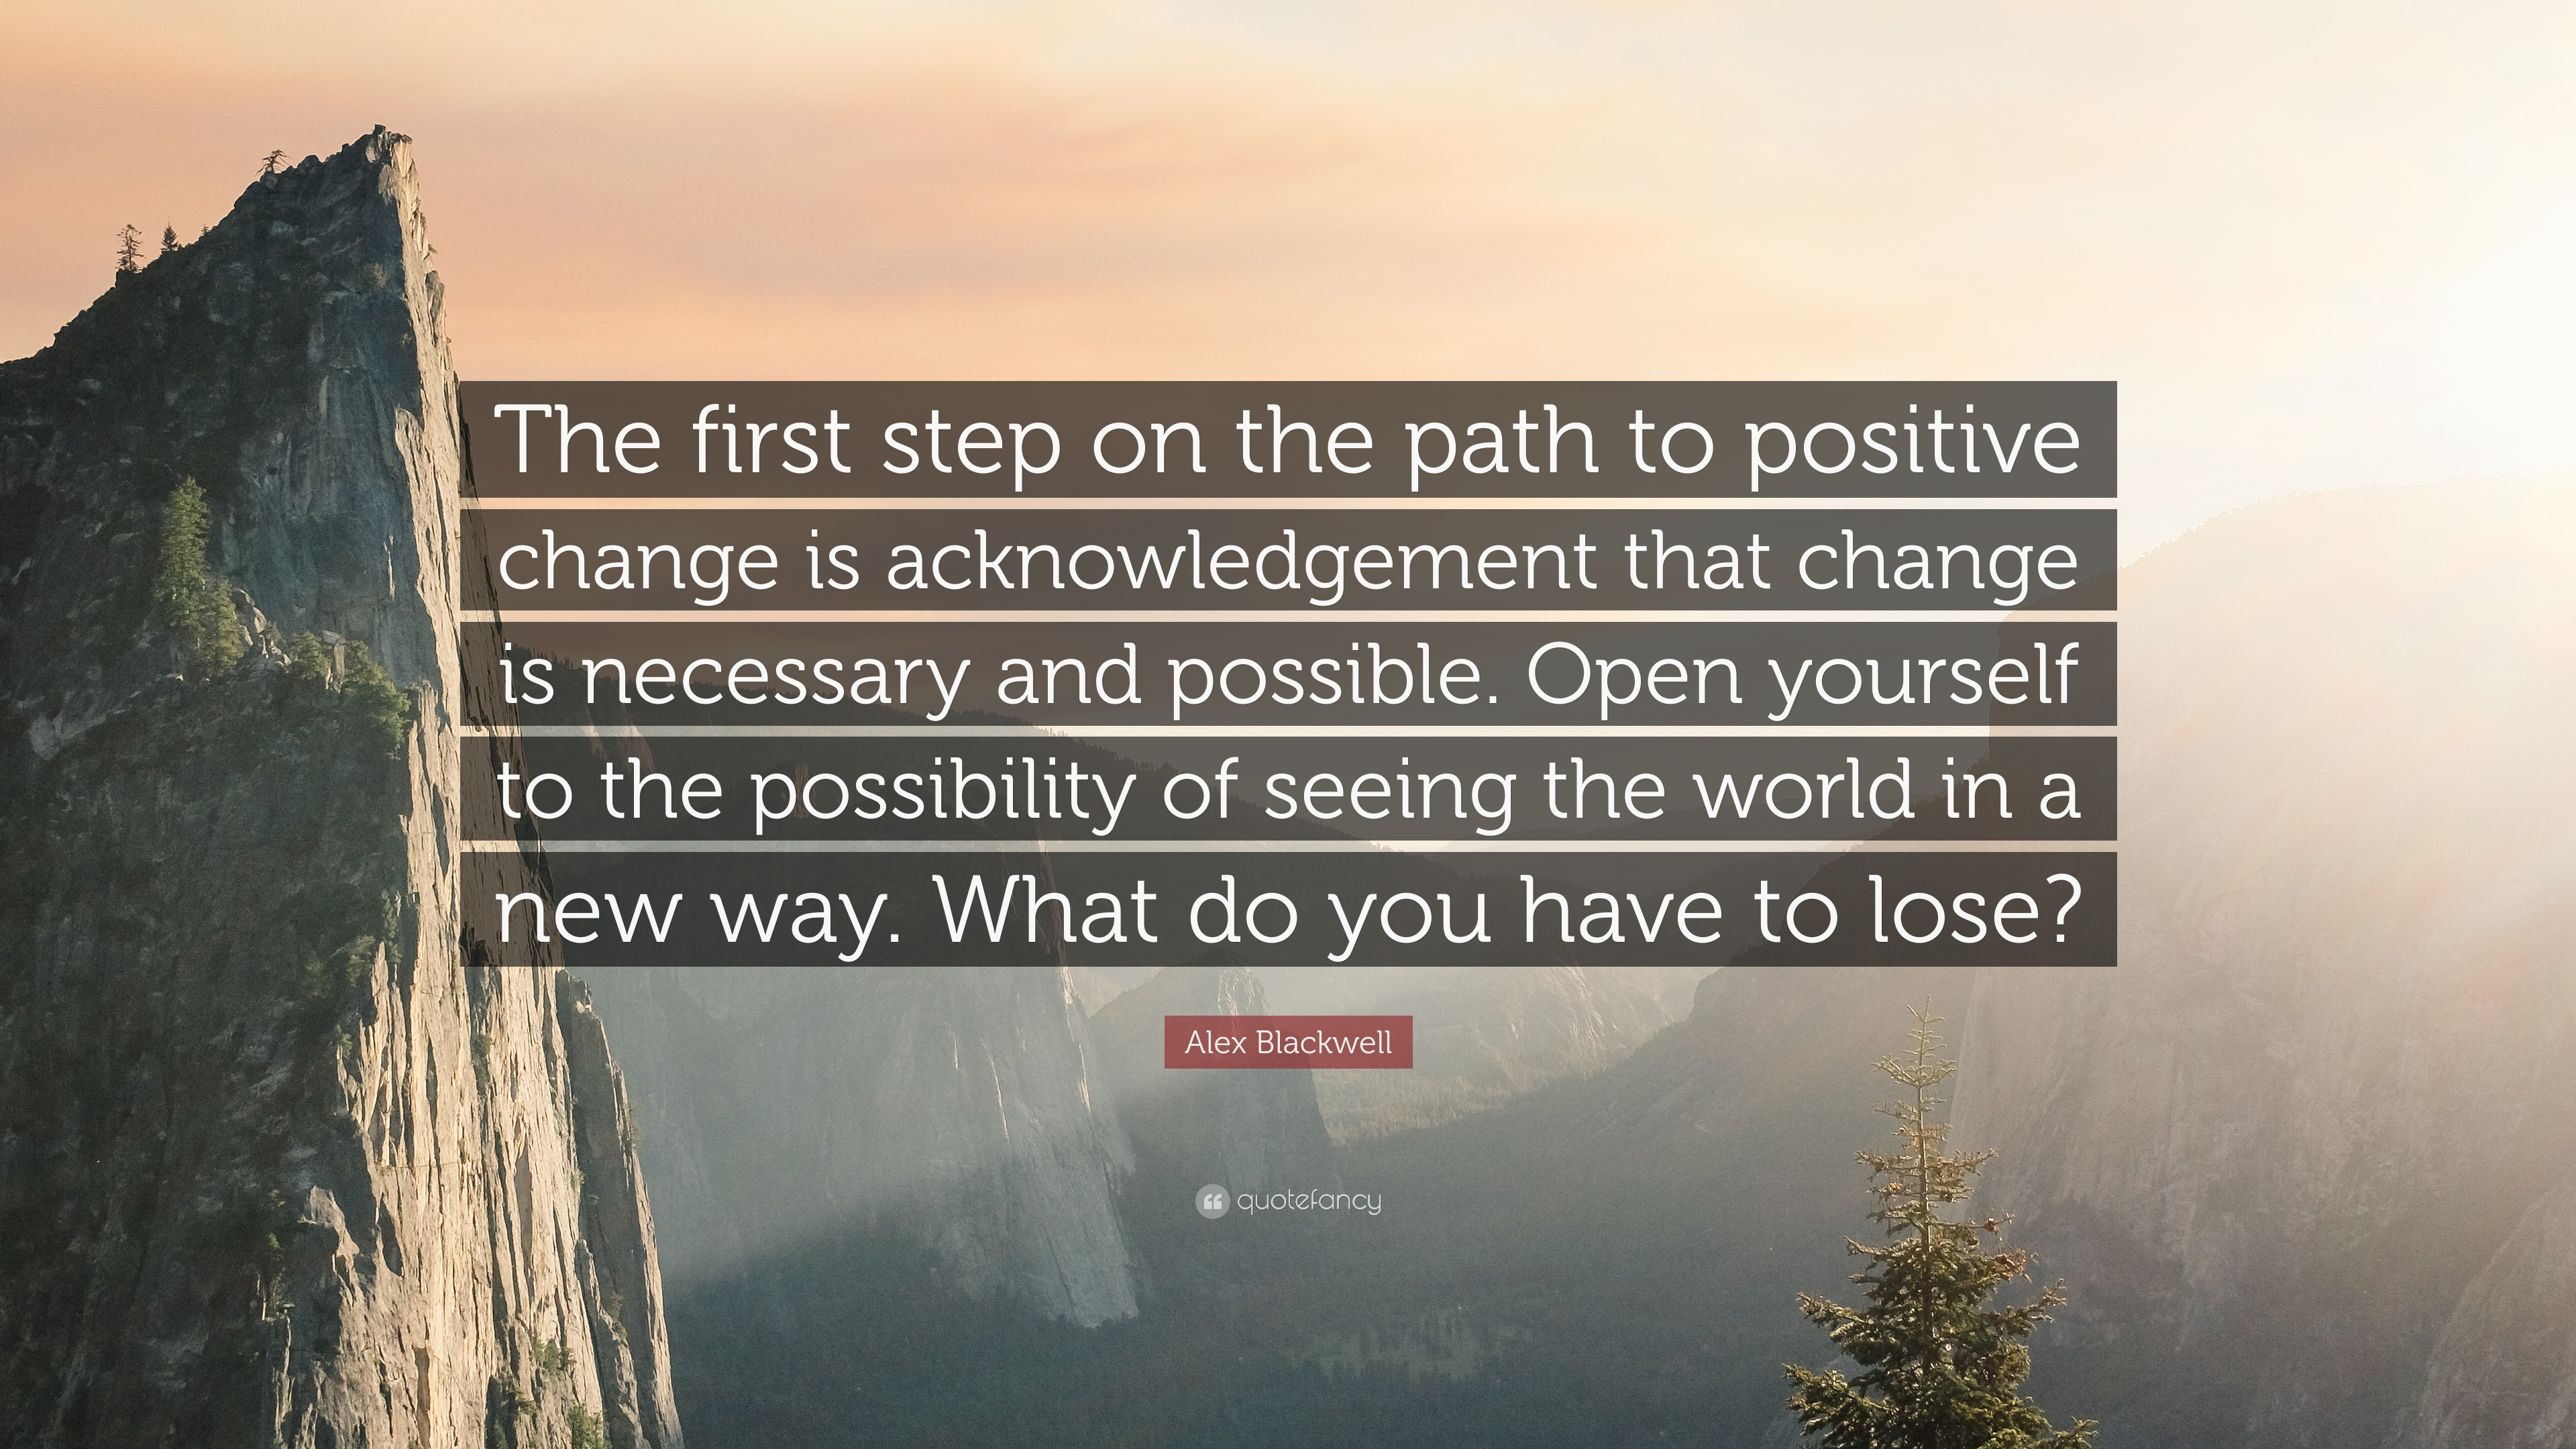 alex blackwell quote the first step on the path to positive change